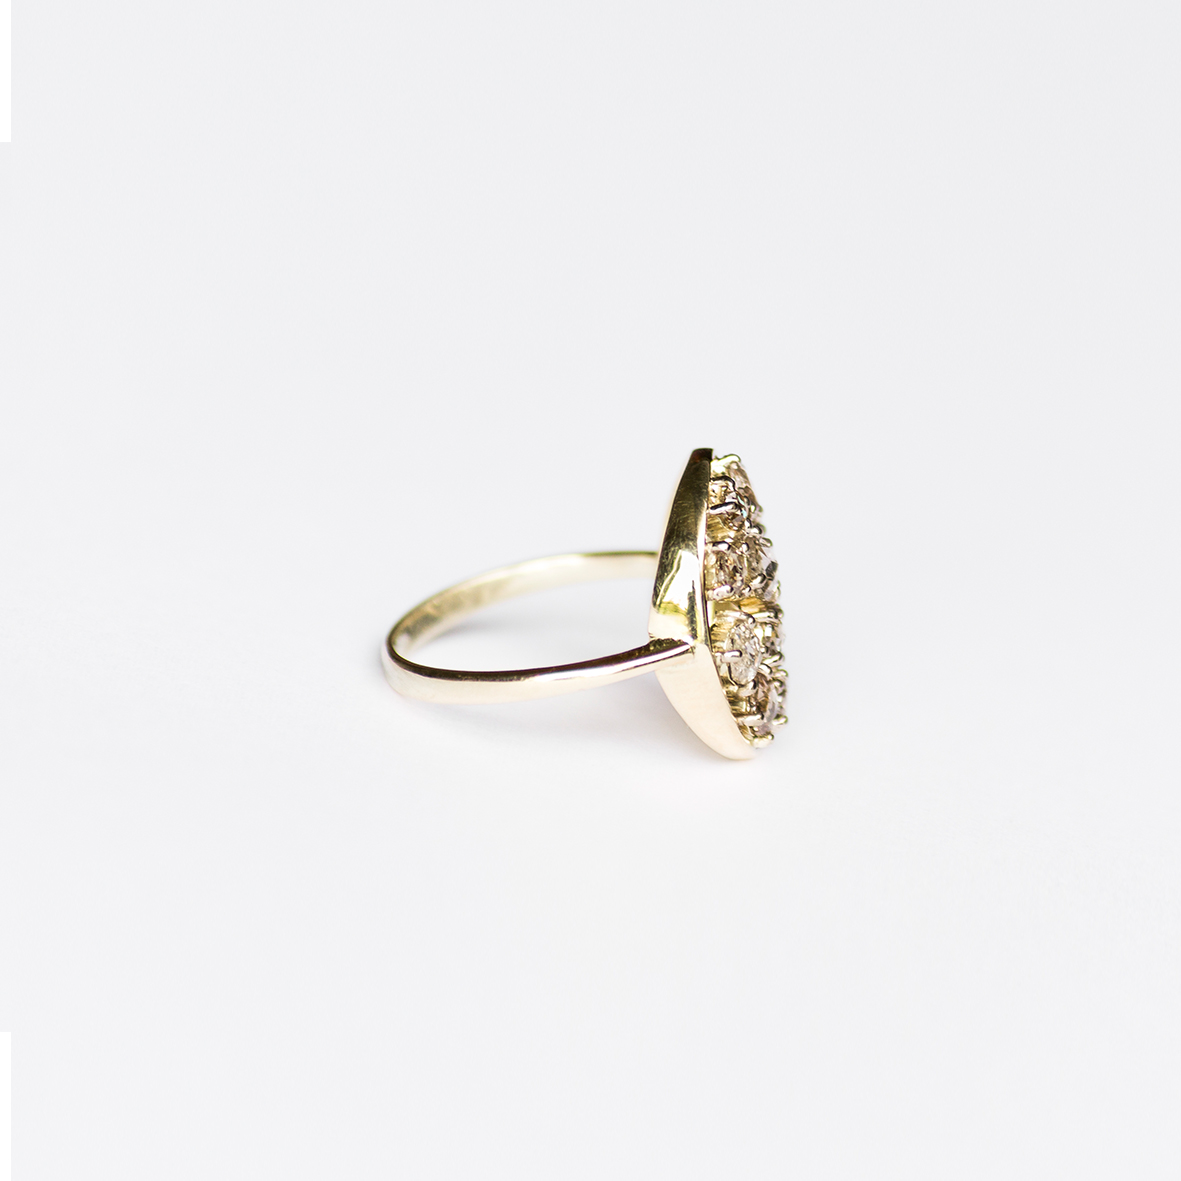 6. OONA_engagement_ficha2_diamond mosaic ring copia